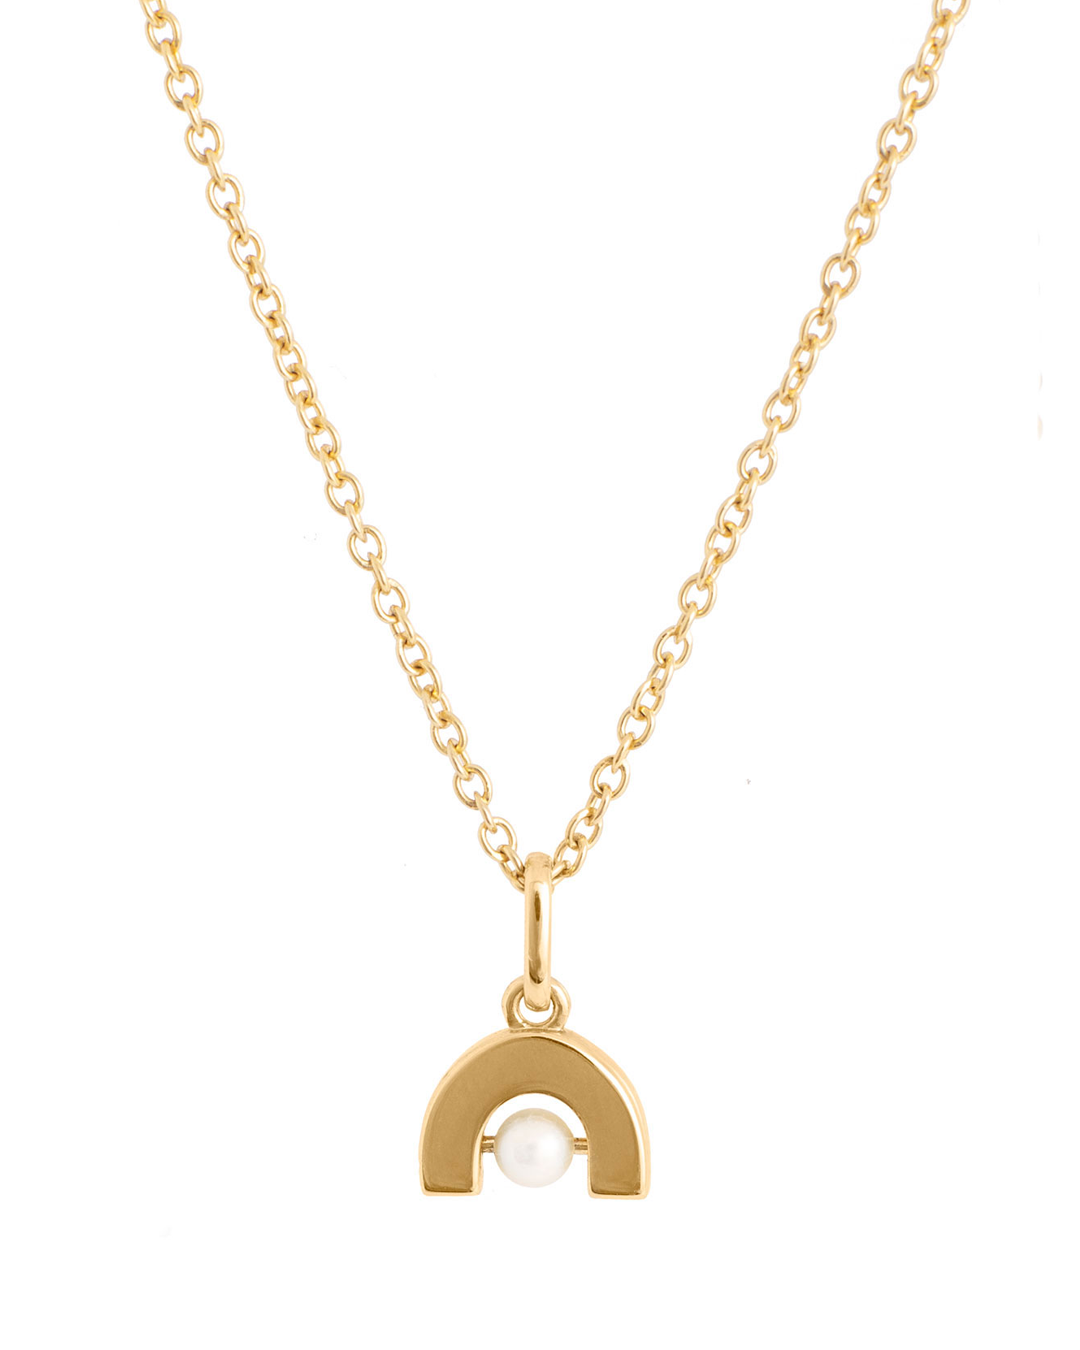 A gold chain necklace, with a delicate gold arch encompassing a pearl.